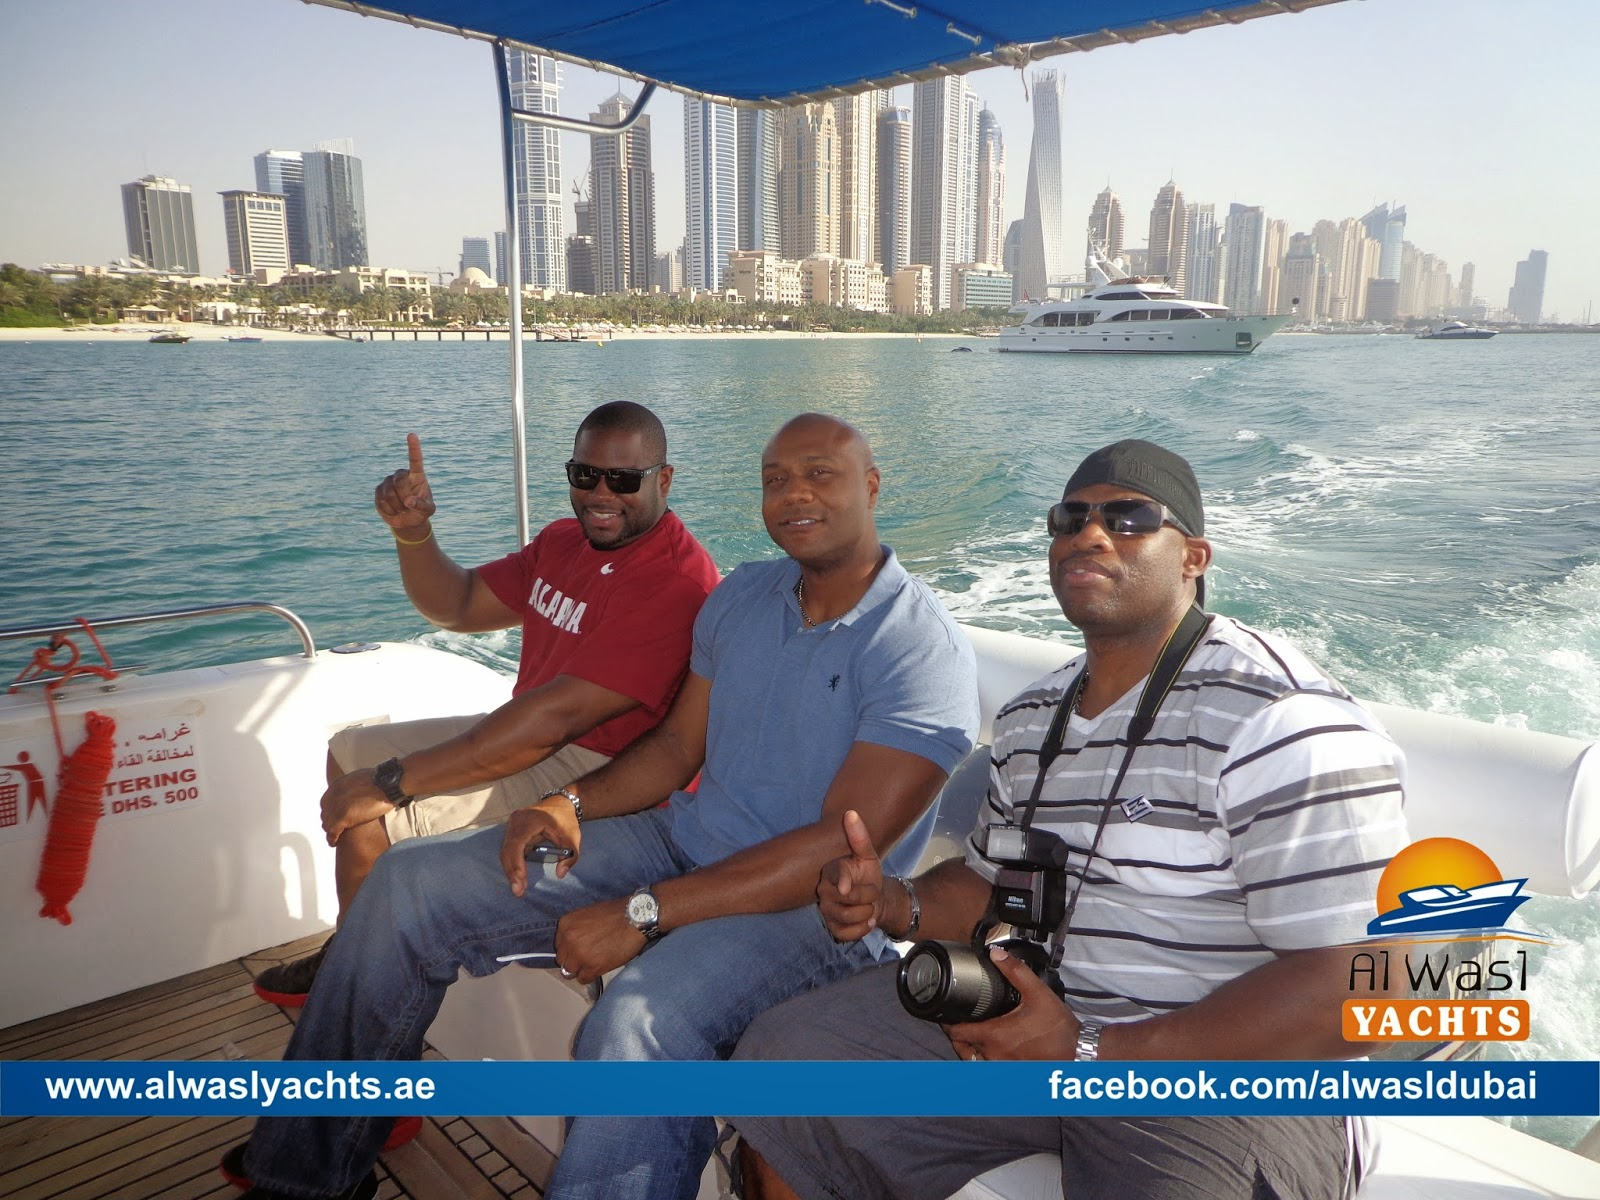 Hire a Yacht in Dubai